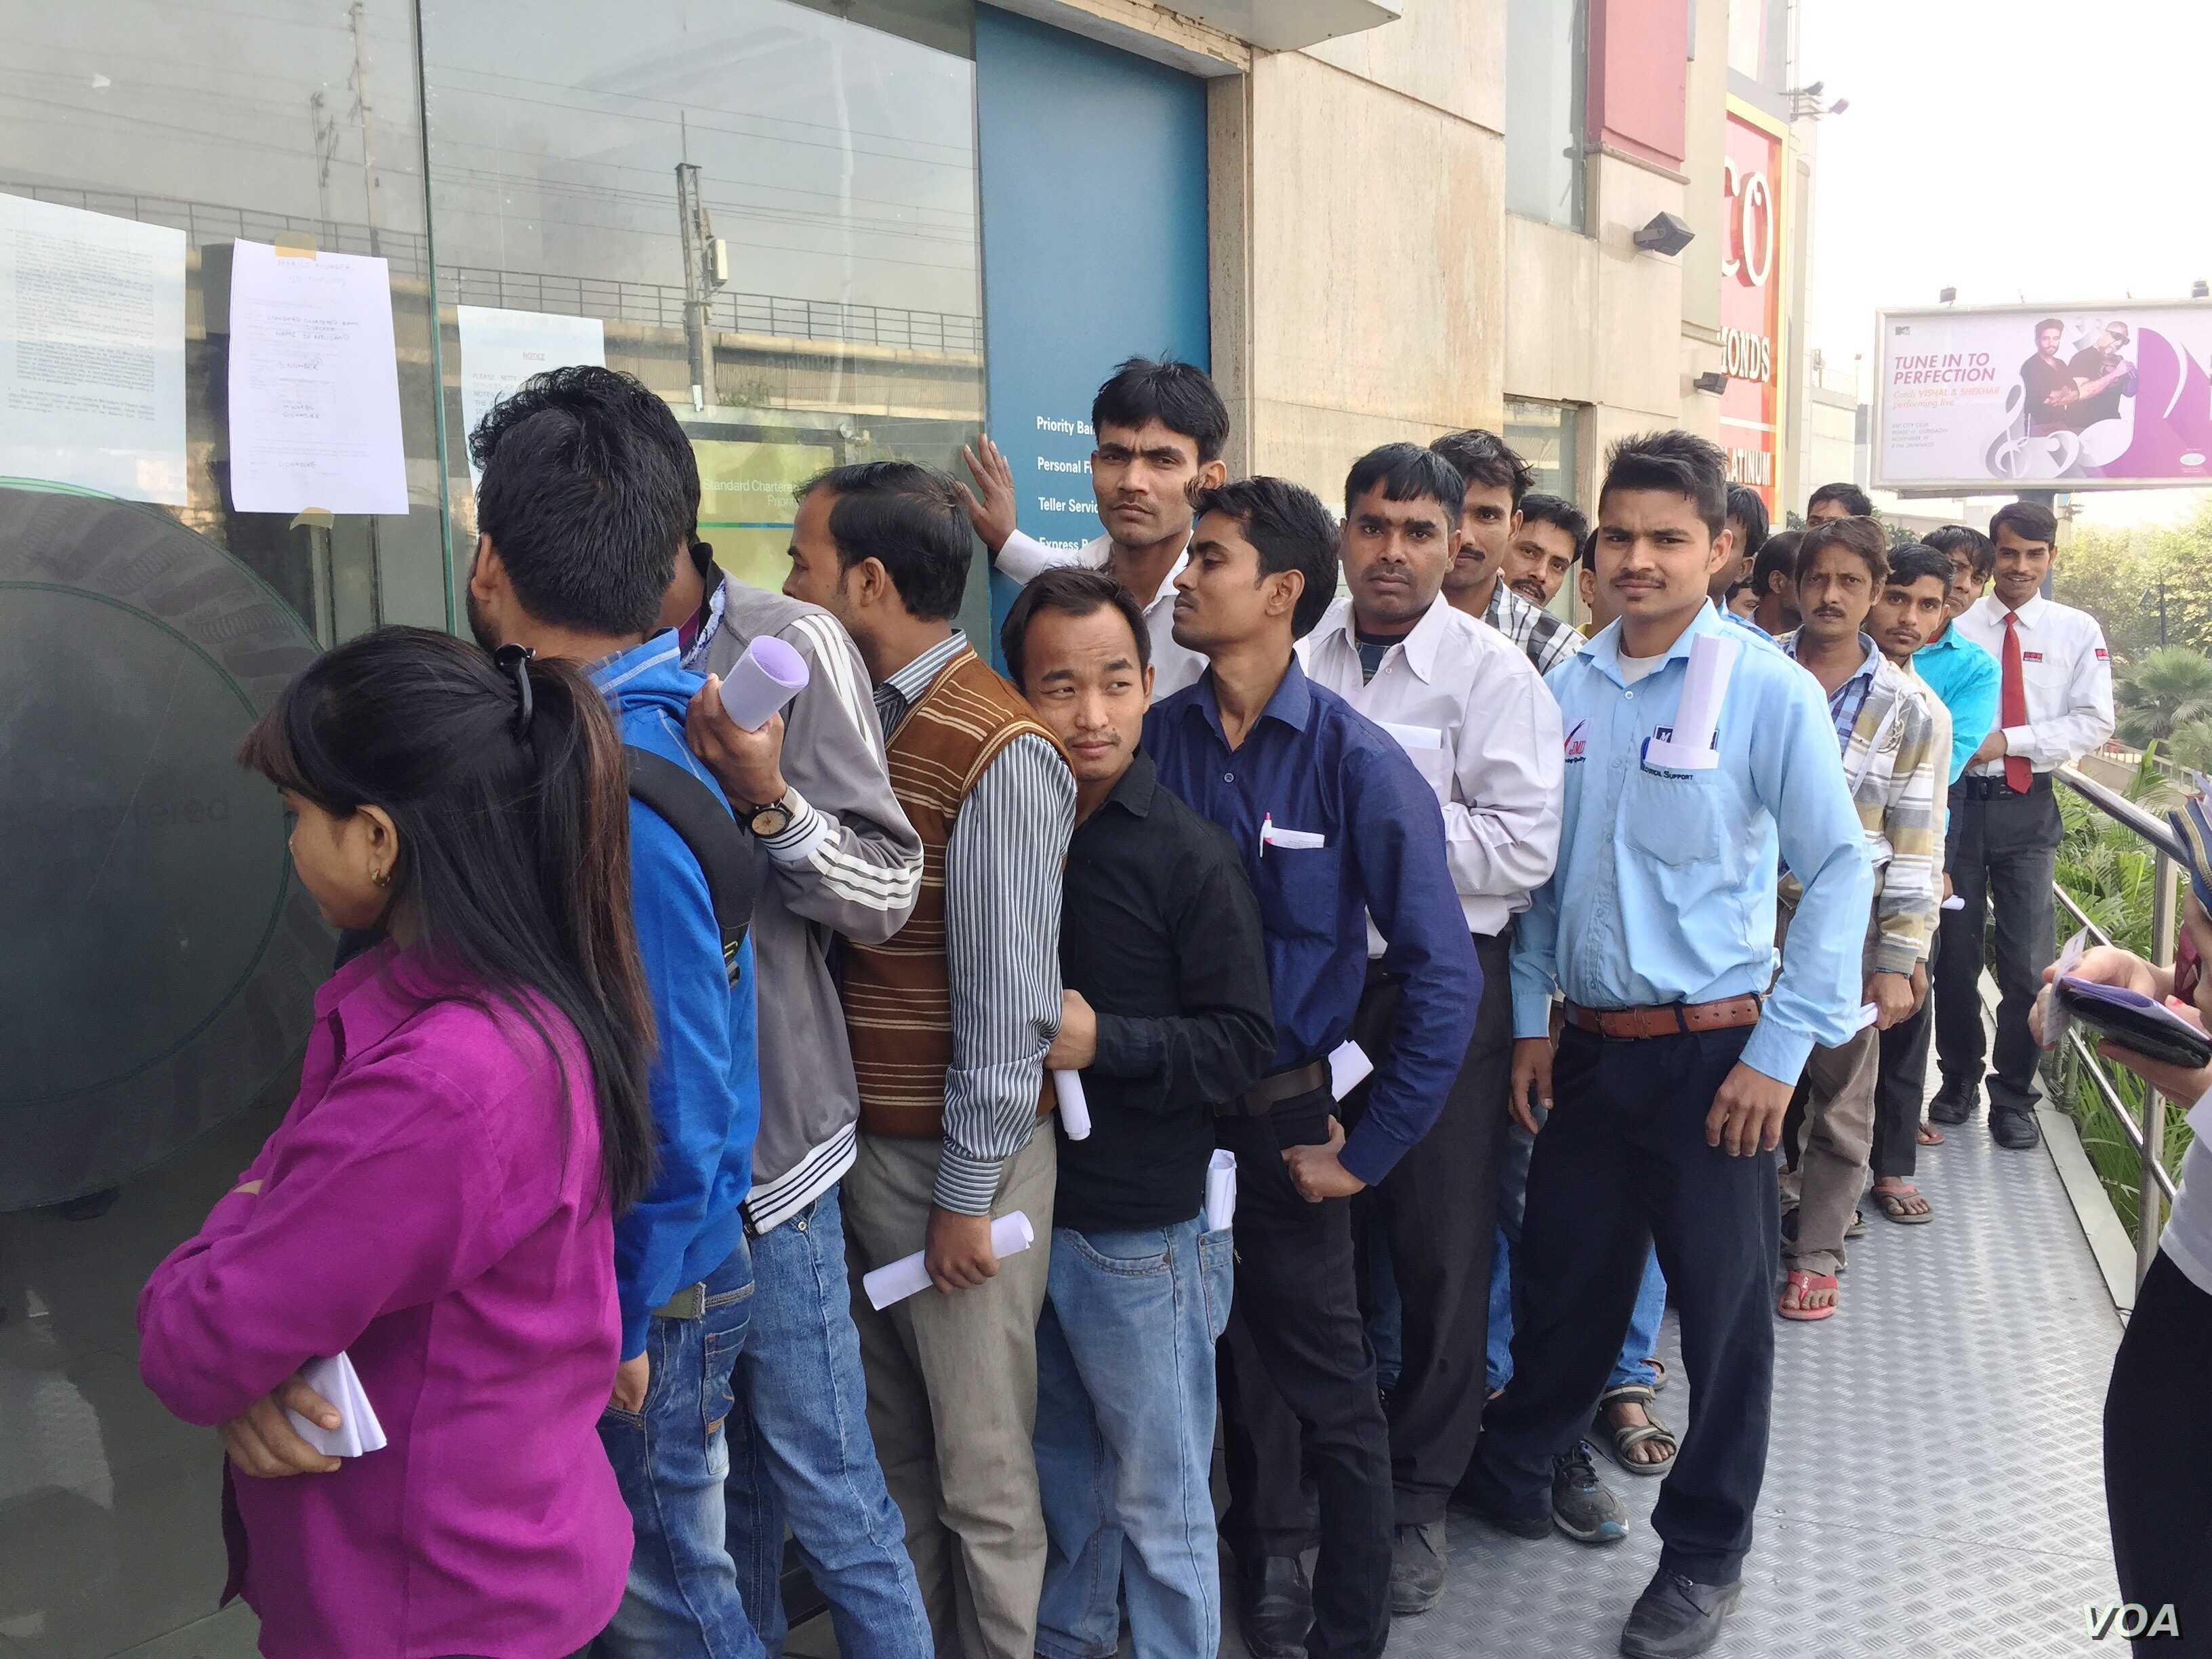 Customers line up outside a New Delhi bank to exchange outdated currency or make withdrawals. (A. Pasricha/VOA)